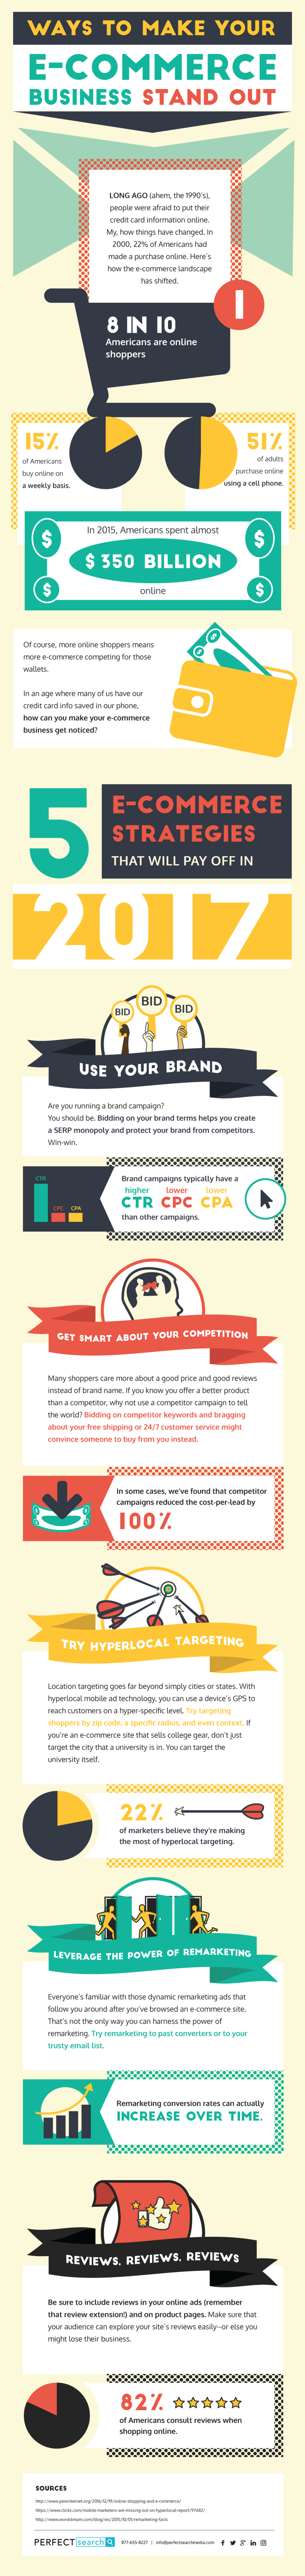 How to Make Your E-Commerce Business Stand Out Infographic